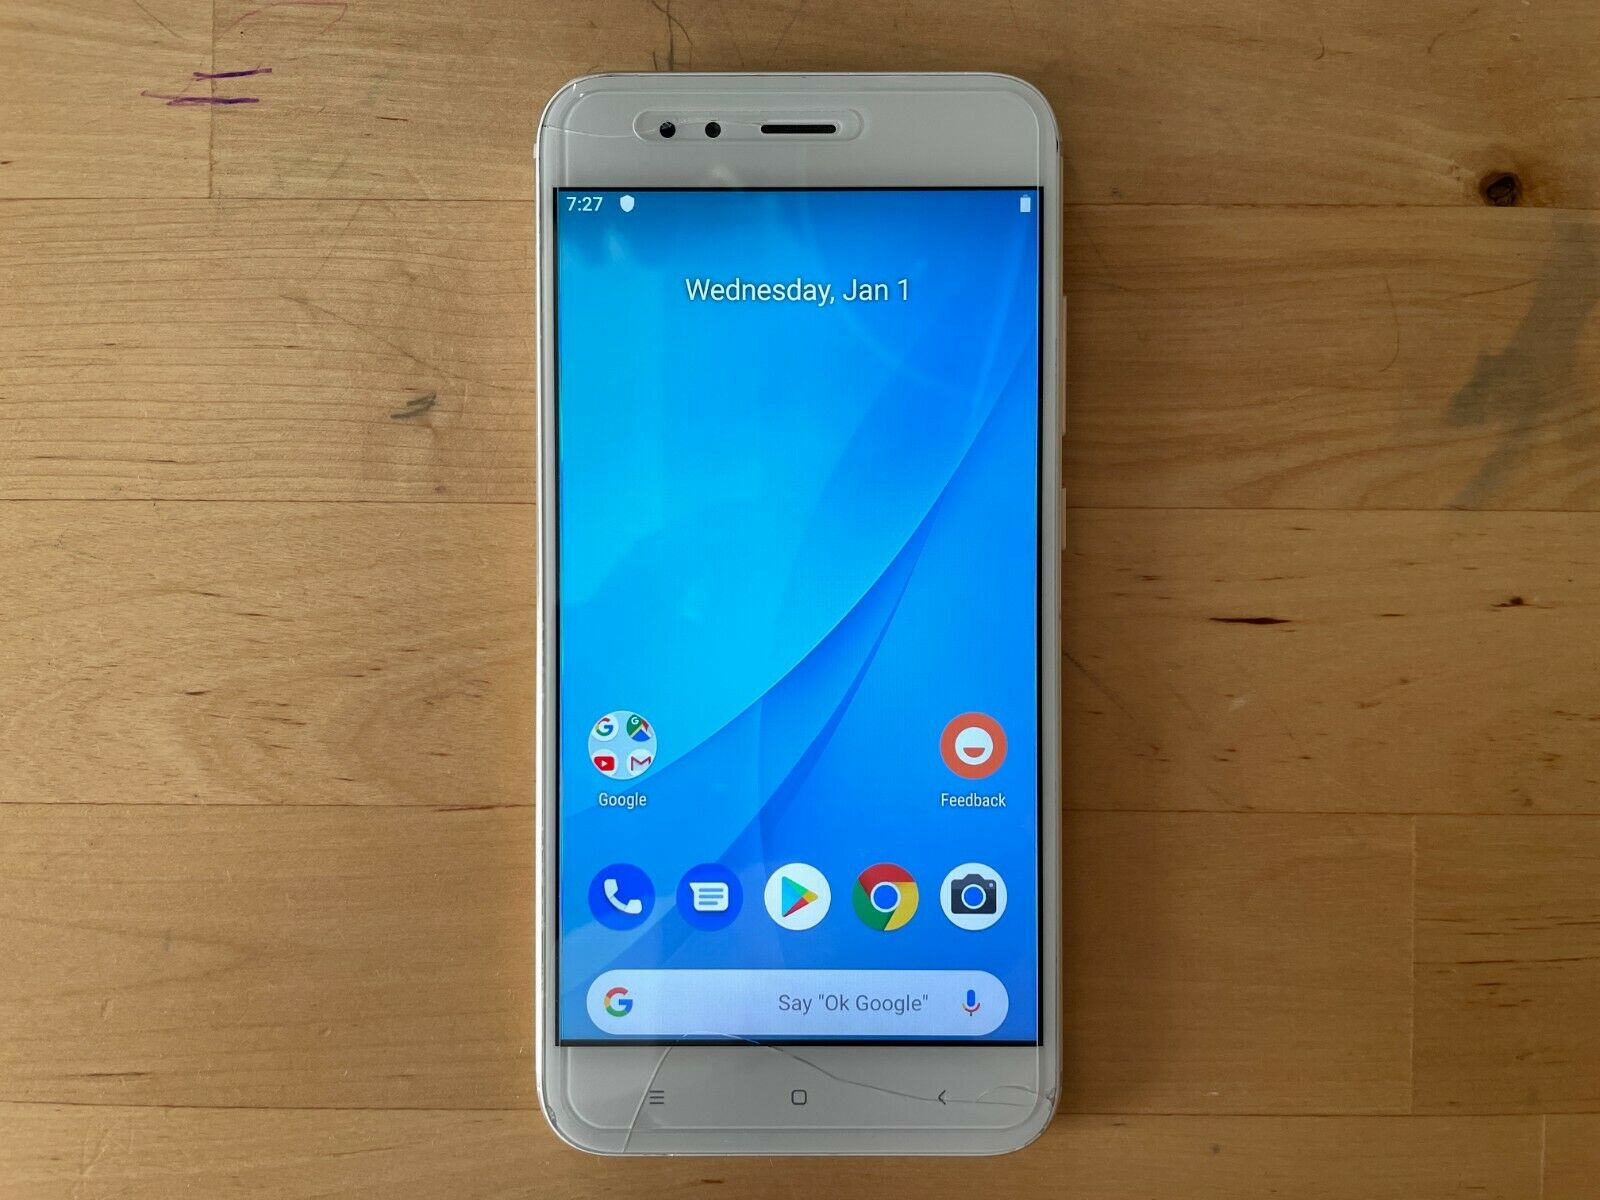 Android Phone - Xiaomi Mi A1 64GB Gold Smartphone Dual SIM Android - Great working condition